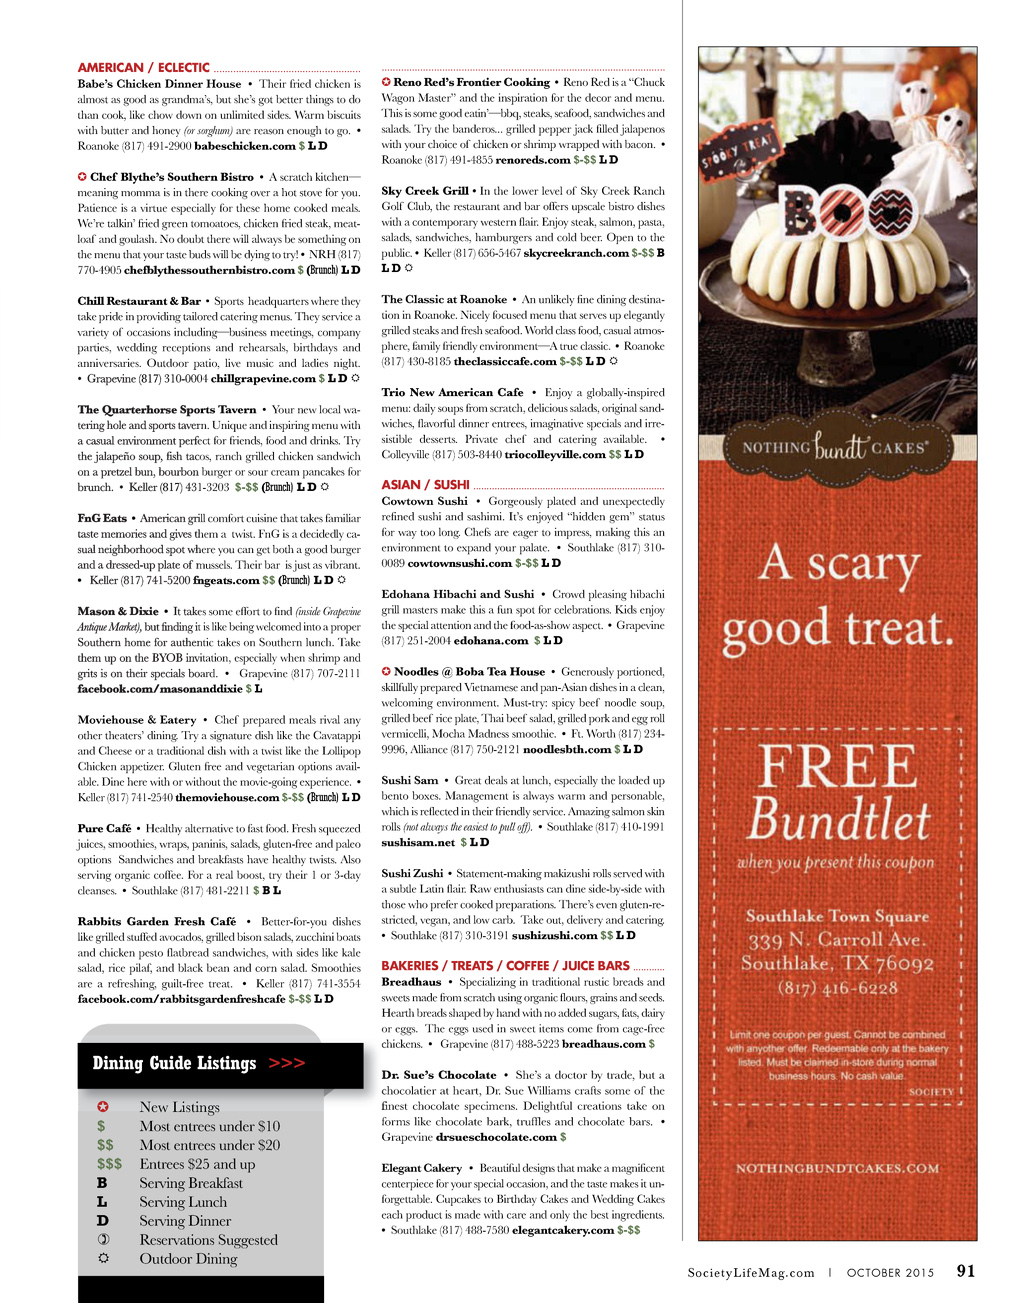 Society Life October 2015 Page 91